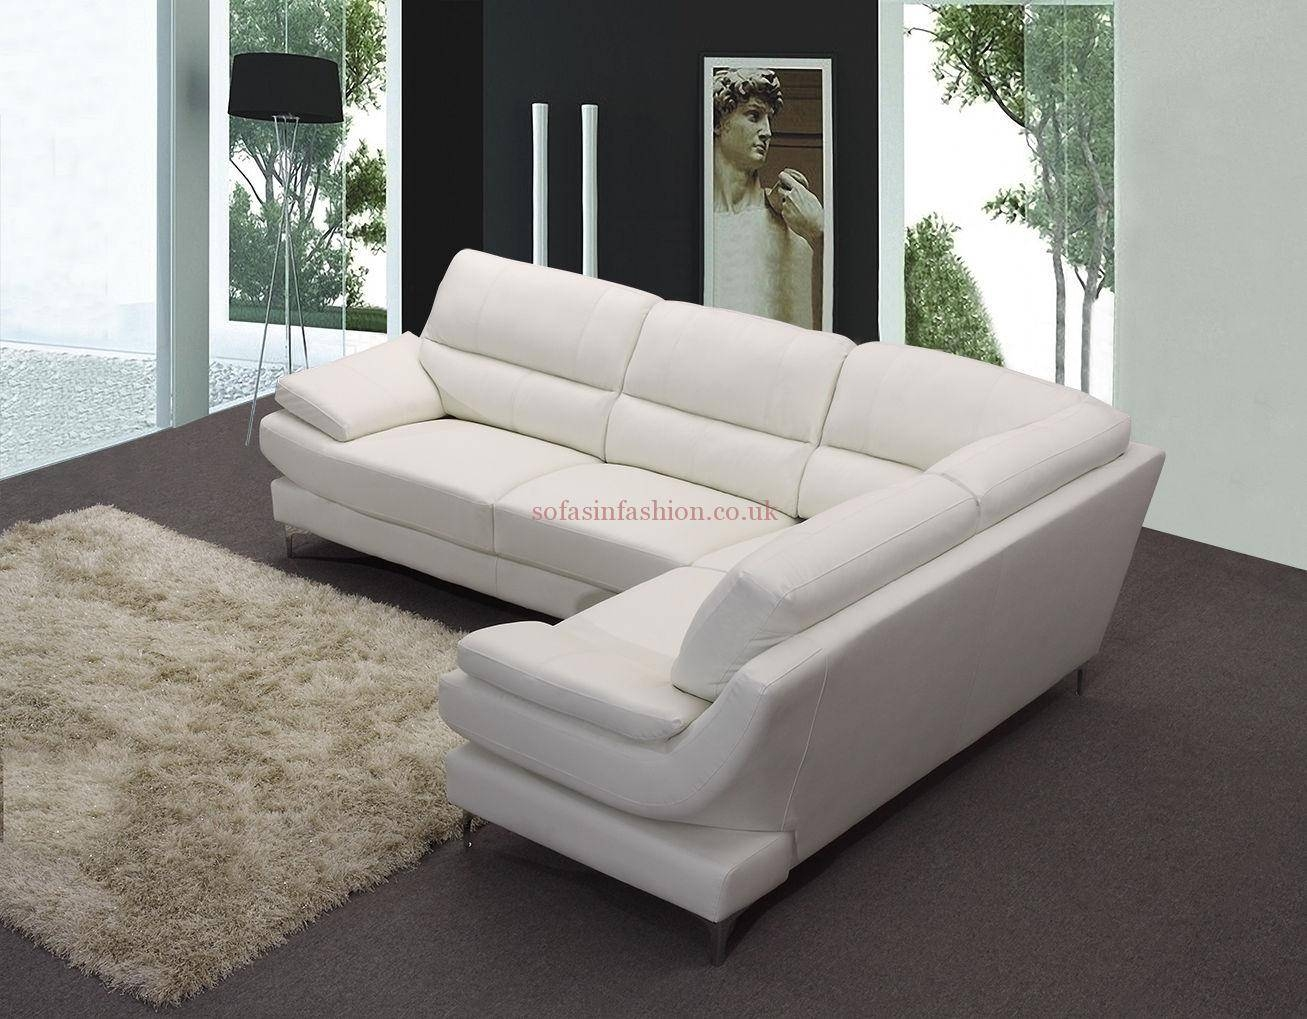 White Faux Leather Corner Sofa | Tehranmix Decoration pertaining to White Leather Corner Sofa (Image 27 of 30)